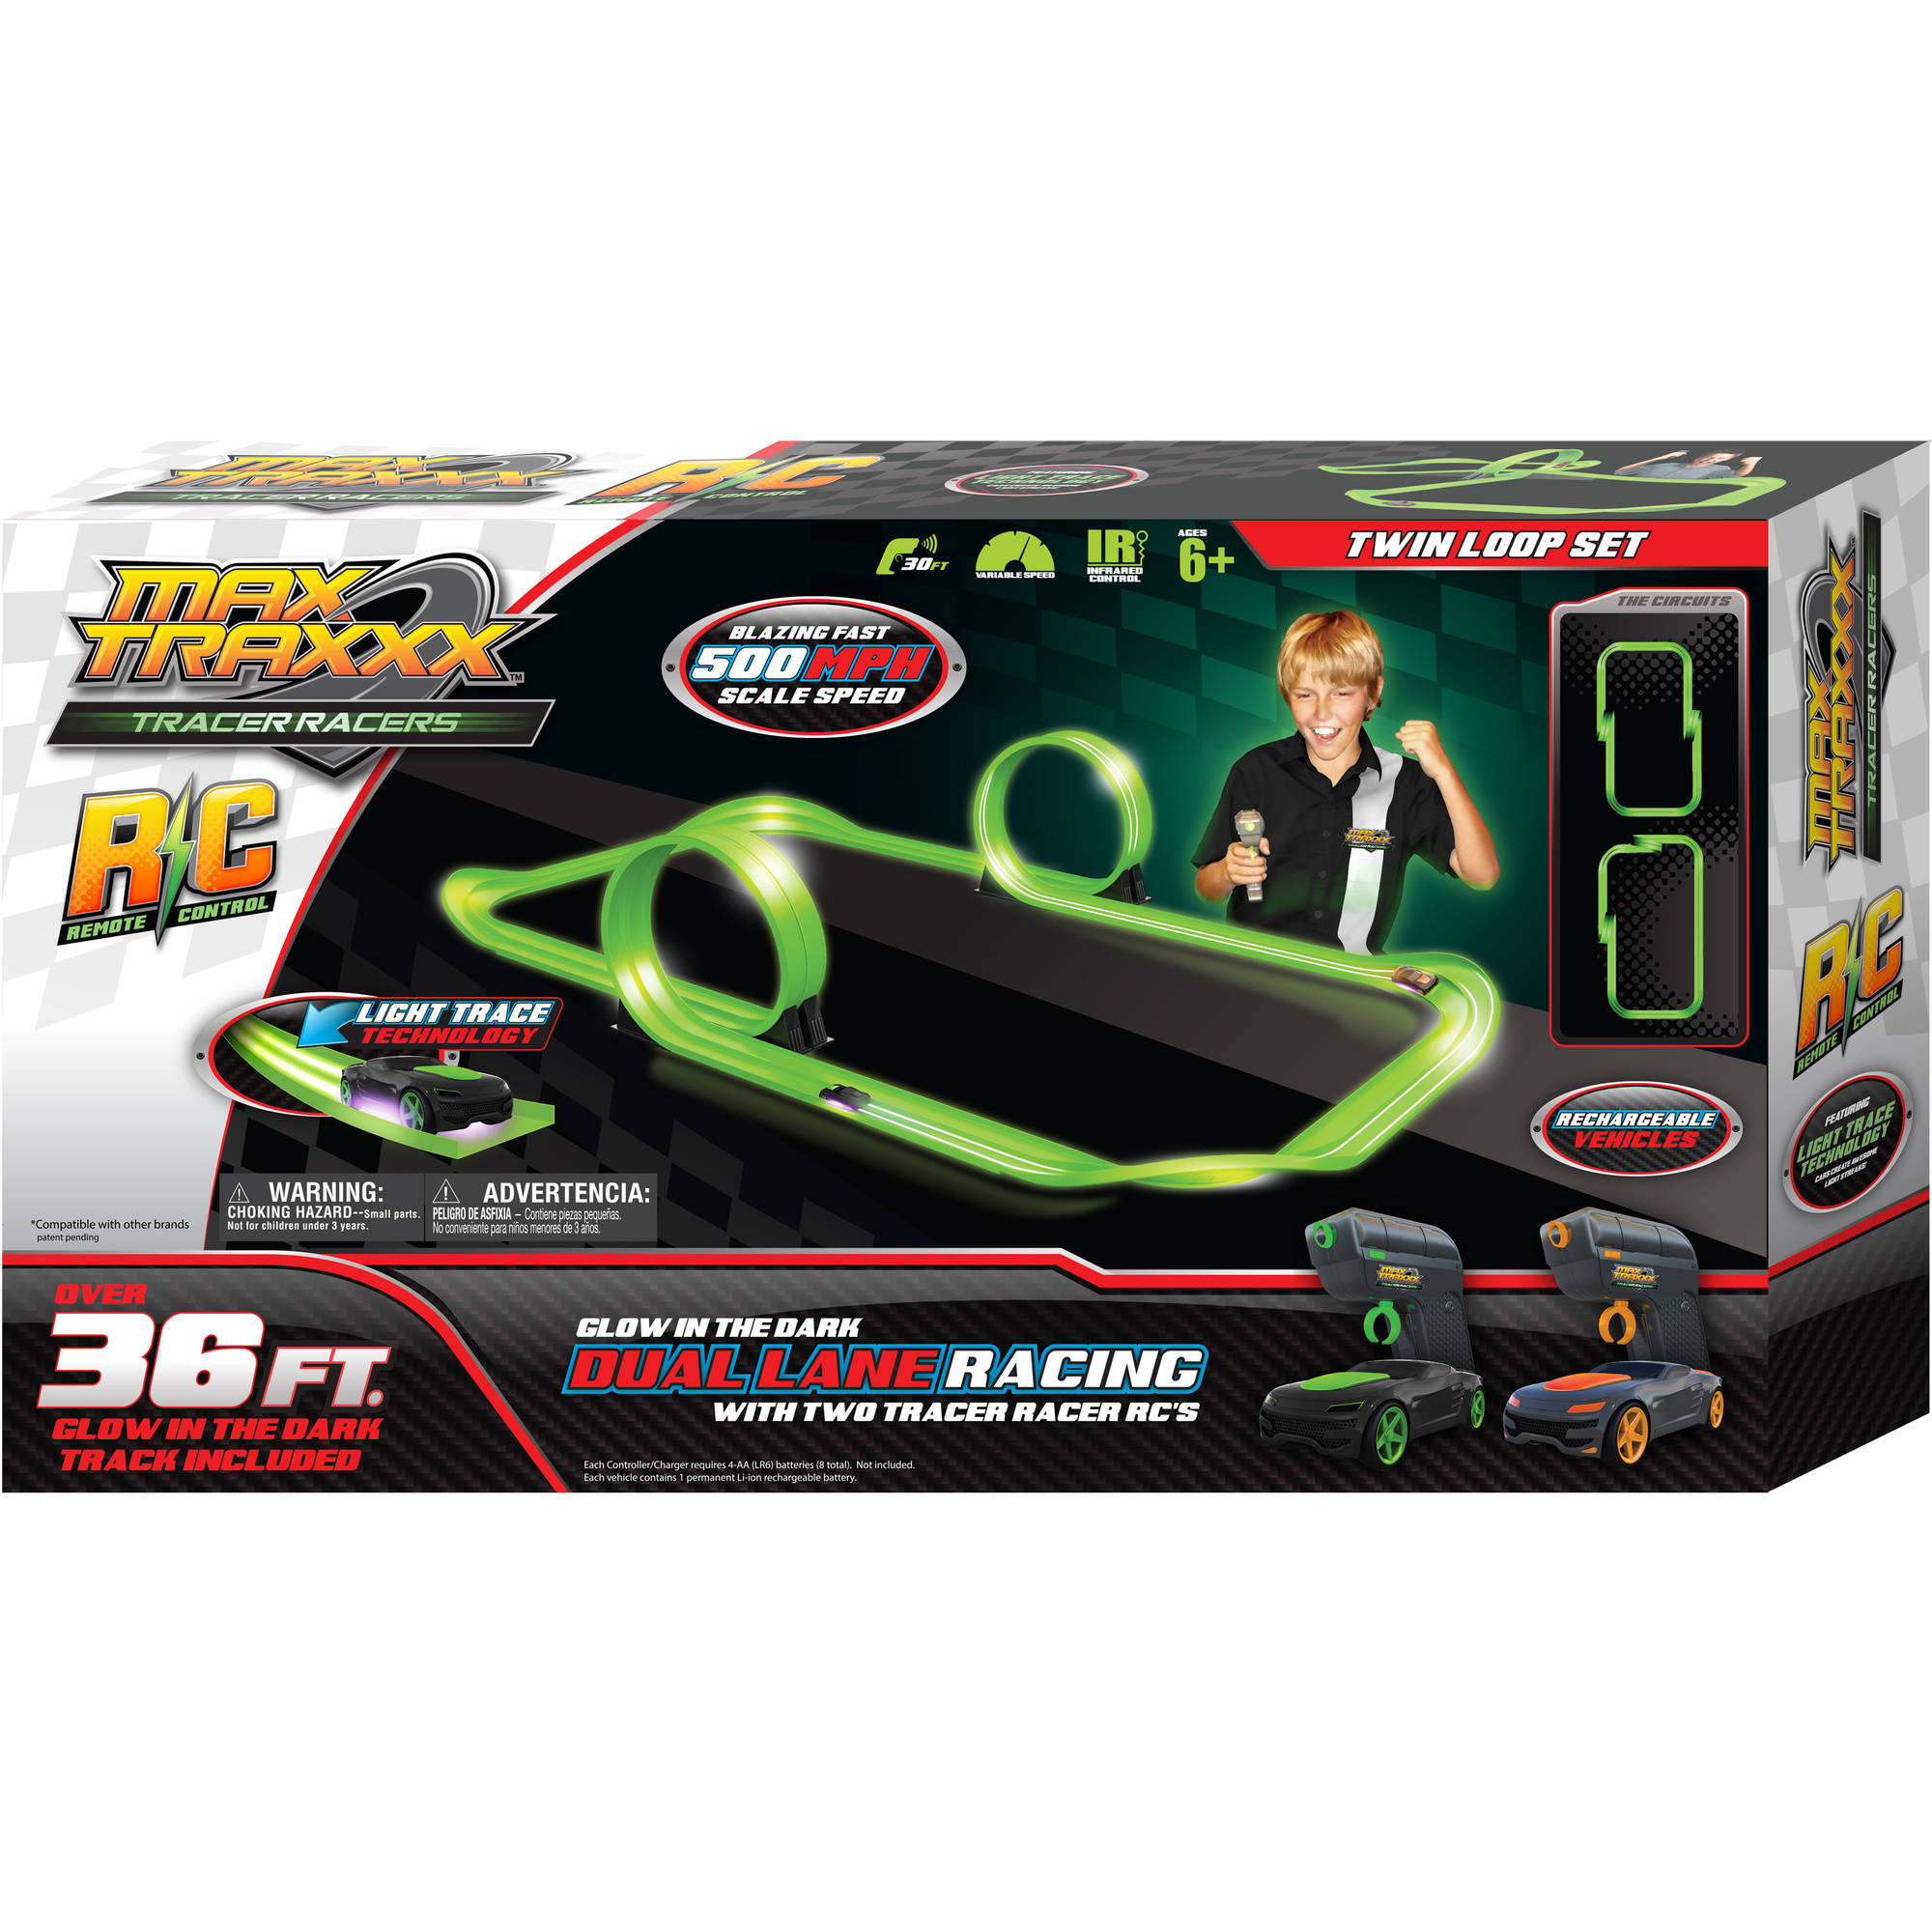 Max Traxxx Tracer Racer Glow-in-the-Dark R/C Dual Loop Set, 36' Track